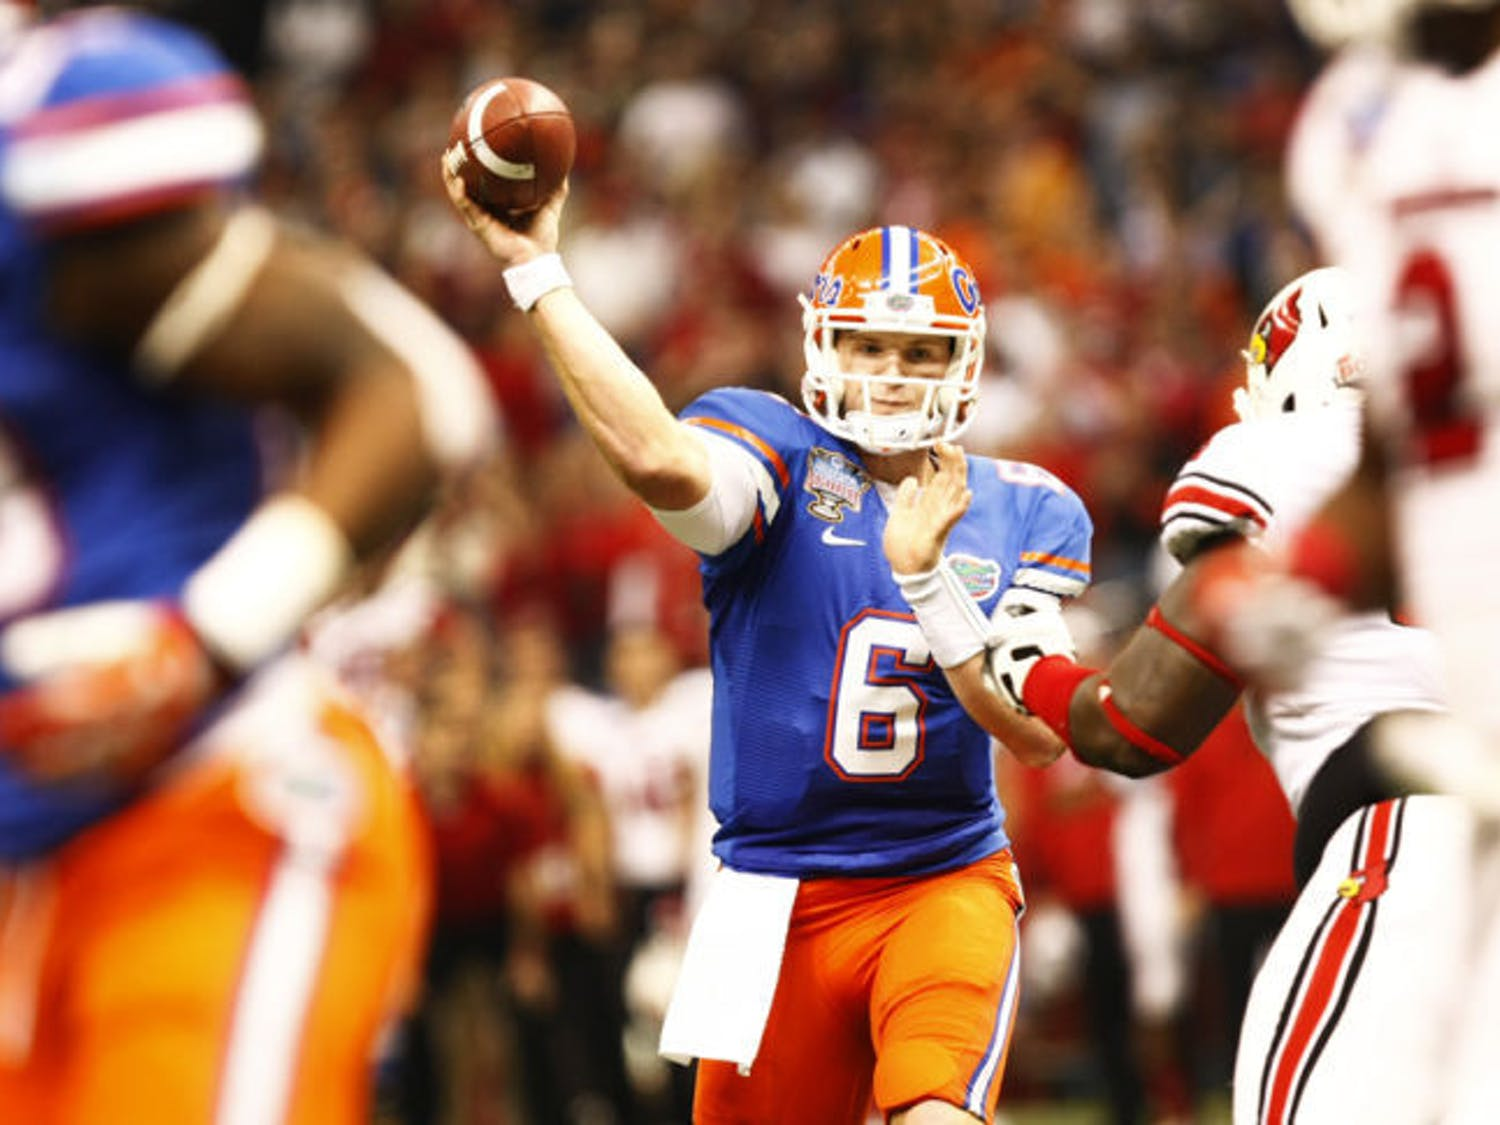 Quarterback Jeff Driskel attempts a pass during Florida's 33-23 loss to Louisville on Jan. 2 at the Superdome in New Orleans. This season will be Driskel's second as UF's starting signal-caller.